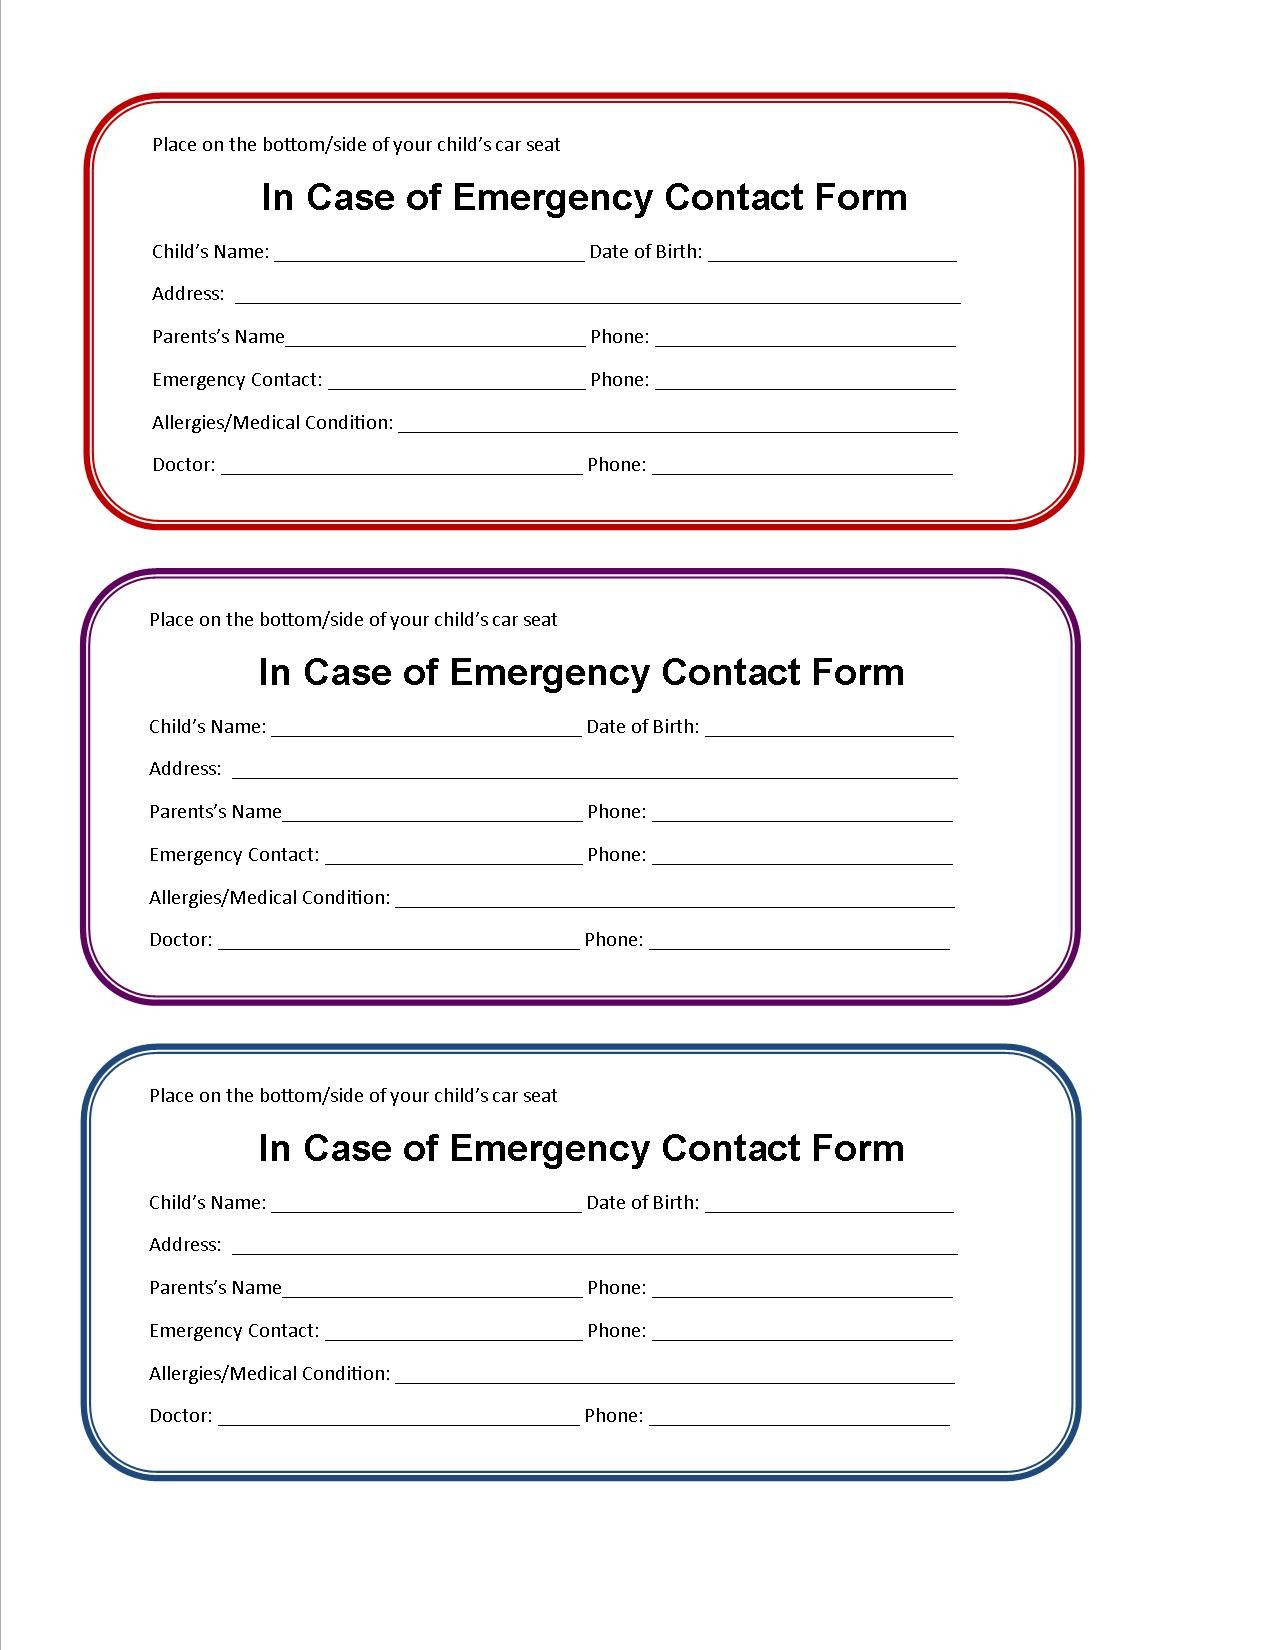 printable emergency contact form for car seat